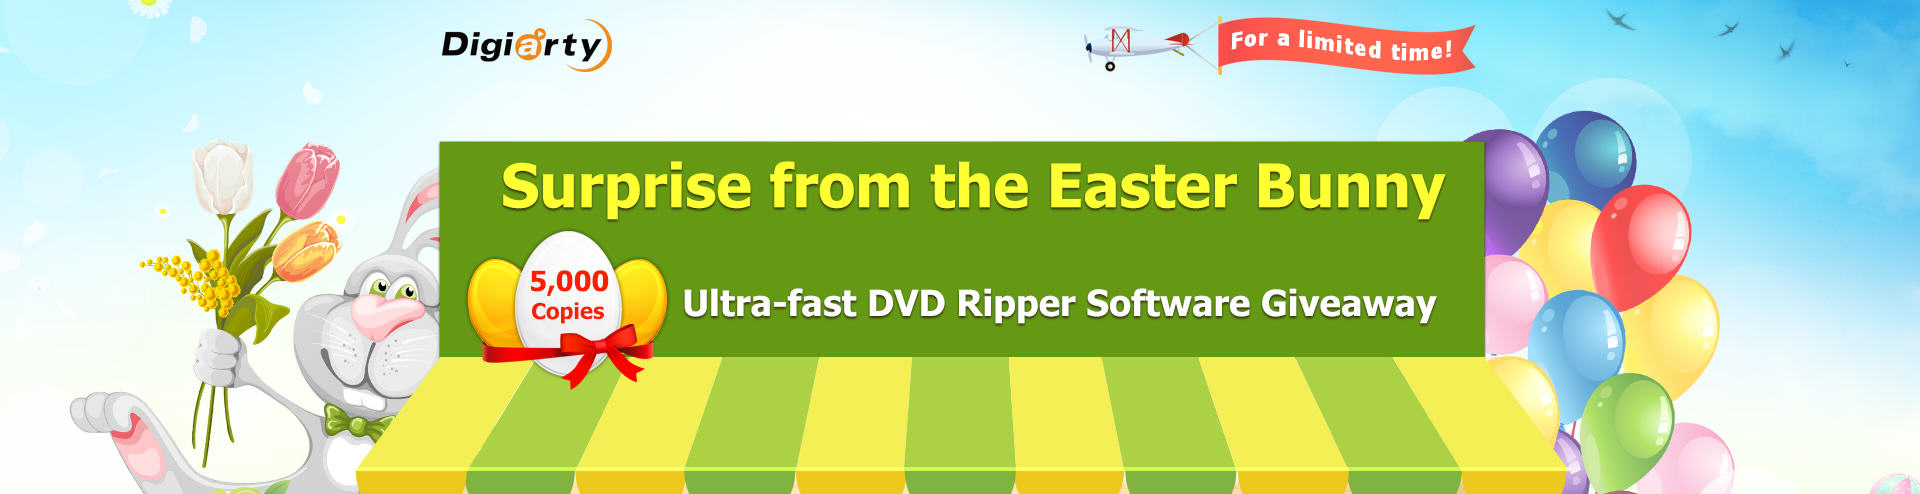 Digiarty Easter Giveaway